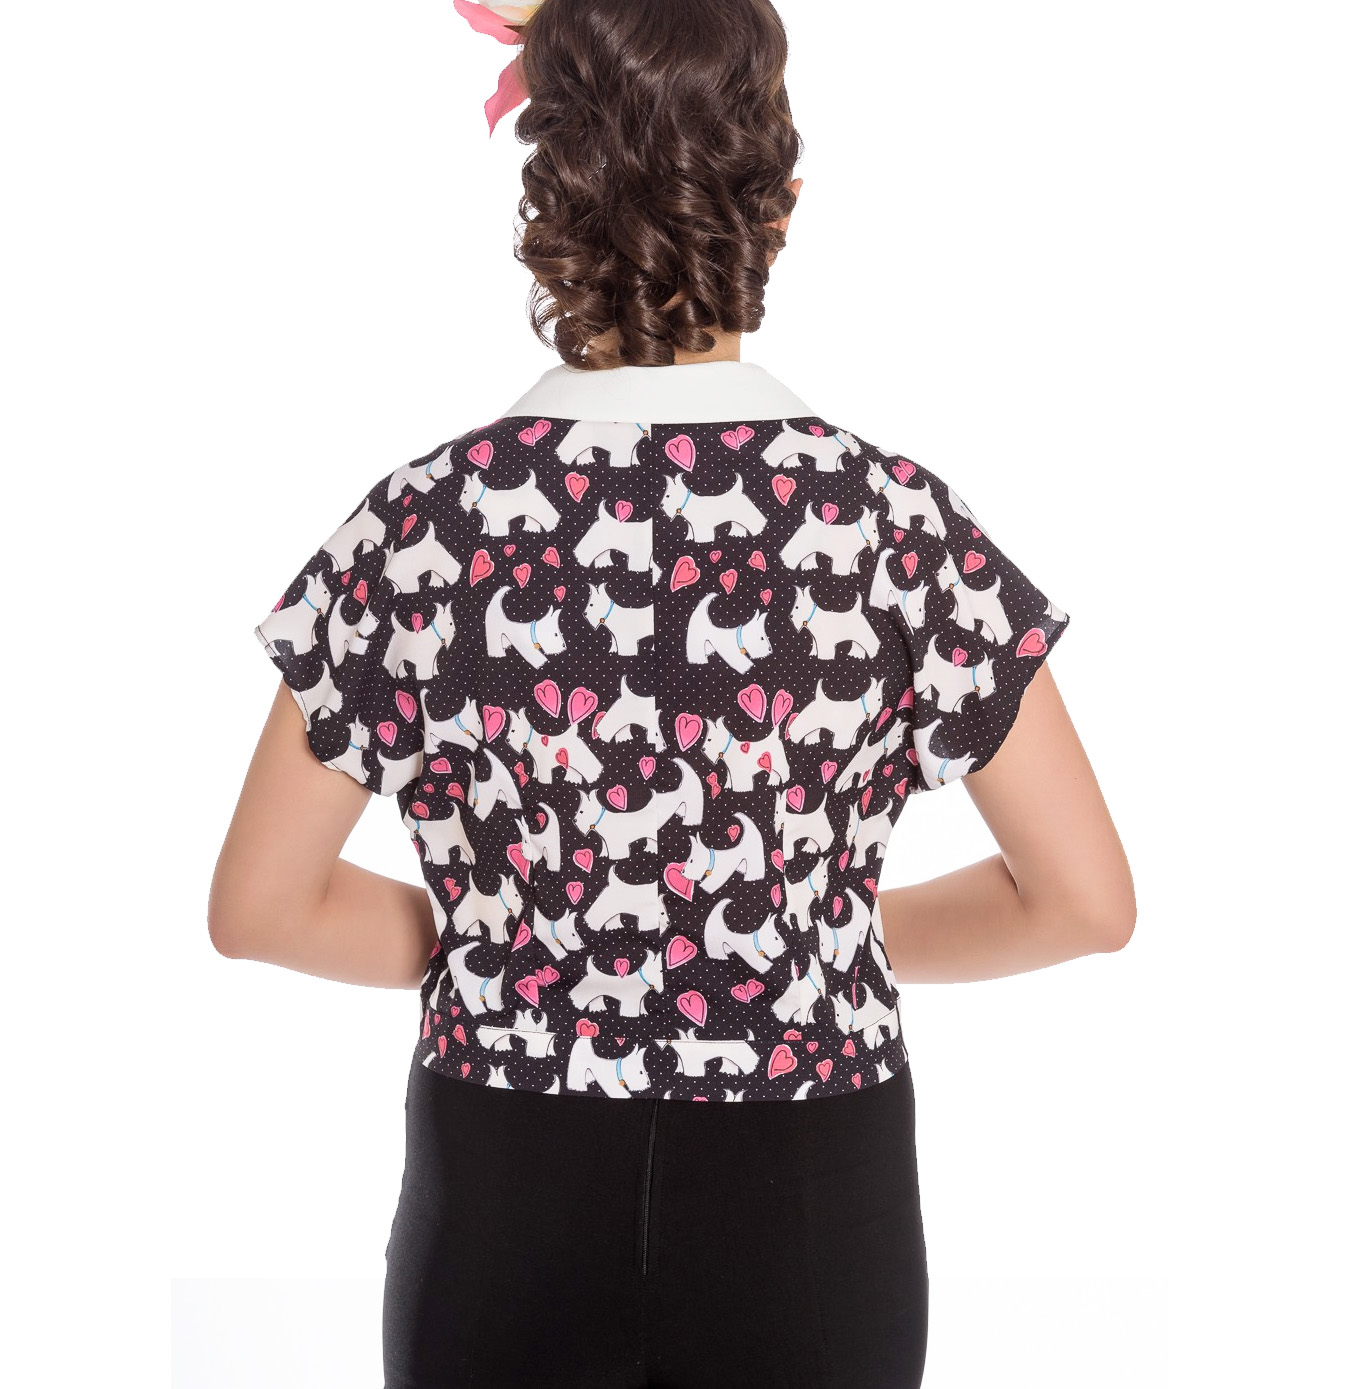 Hell-Bunny-50s-Retro-Top-Scottie-Dog-Heart-AGGY-Cropped-Blouse-Shirt-All-Sizes thumbnail 13